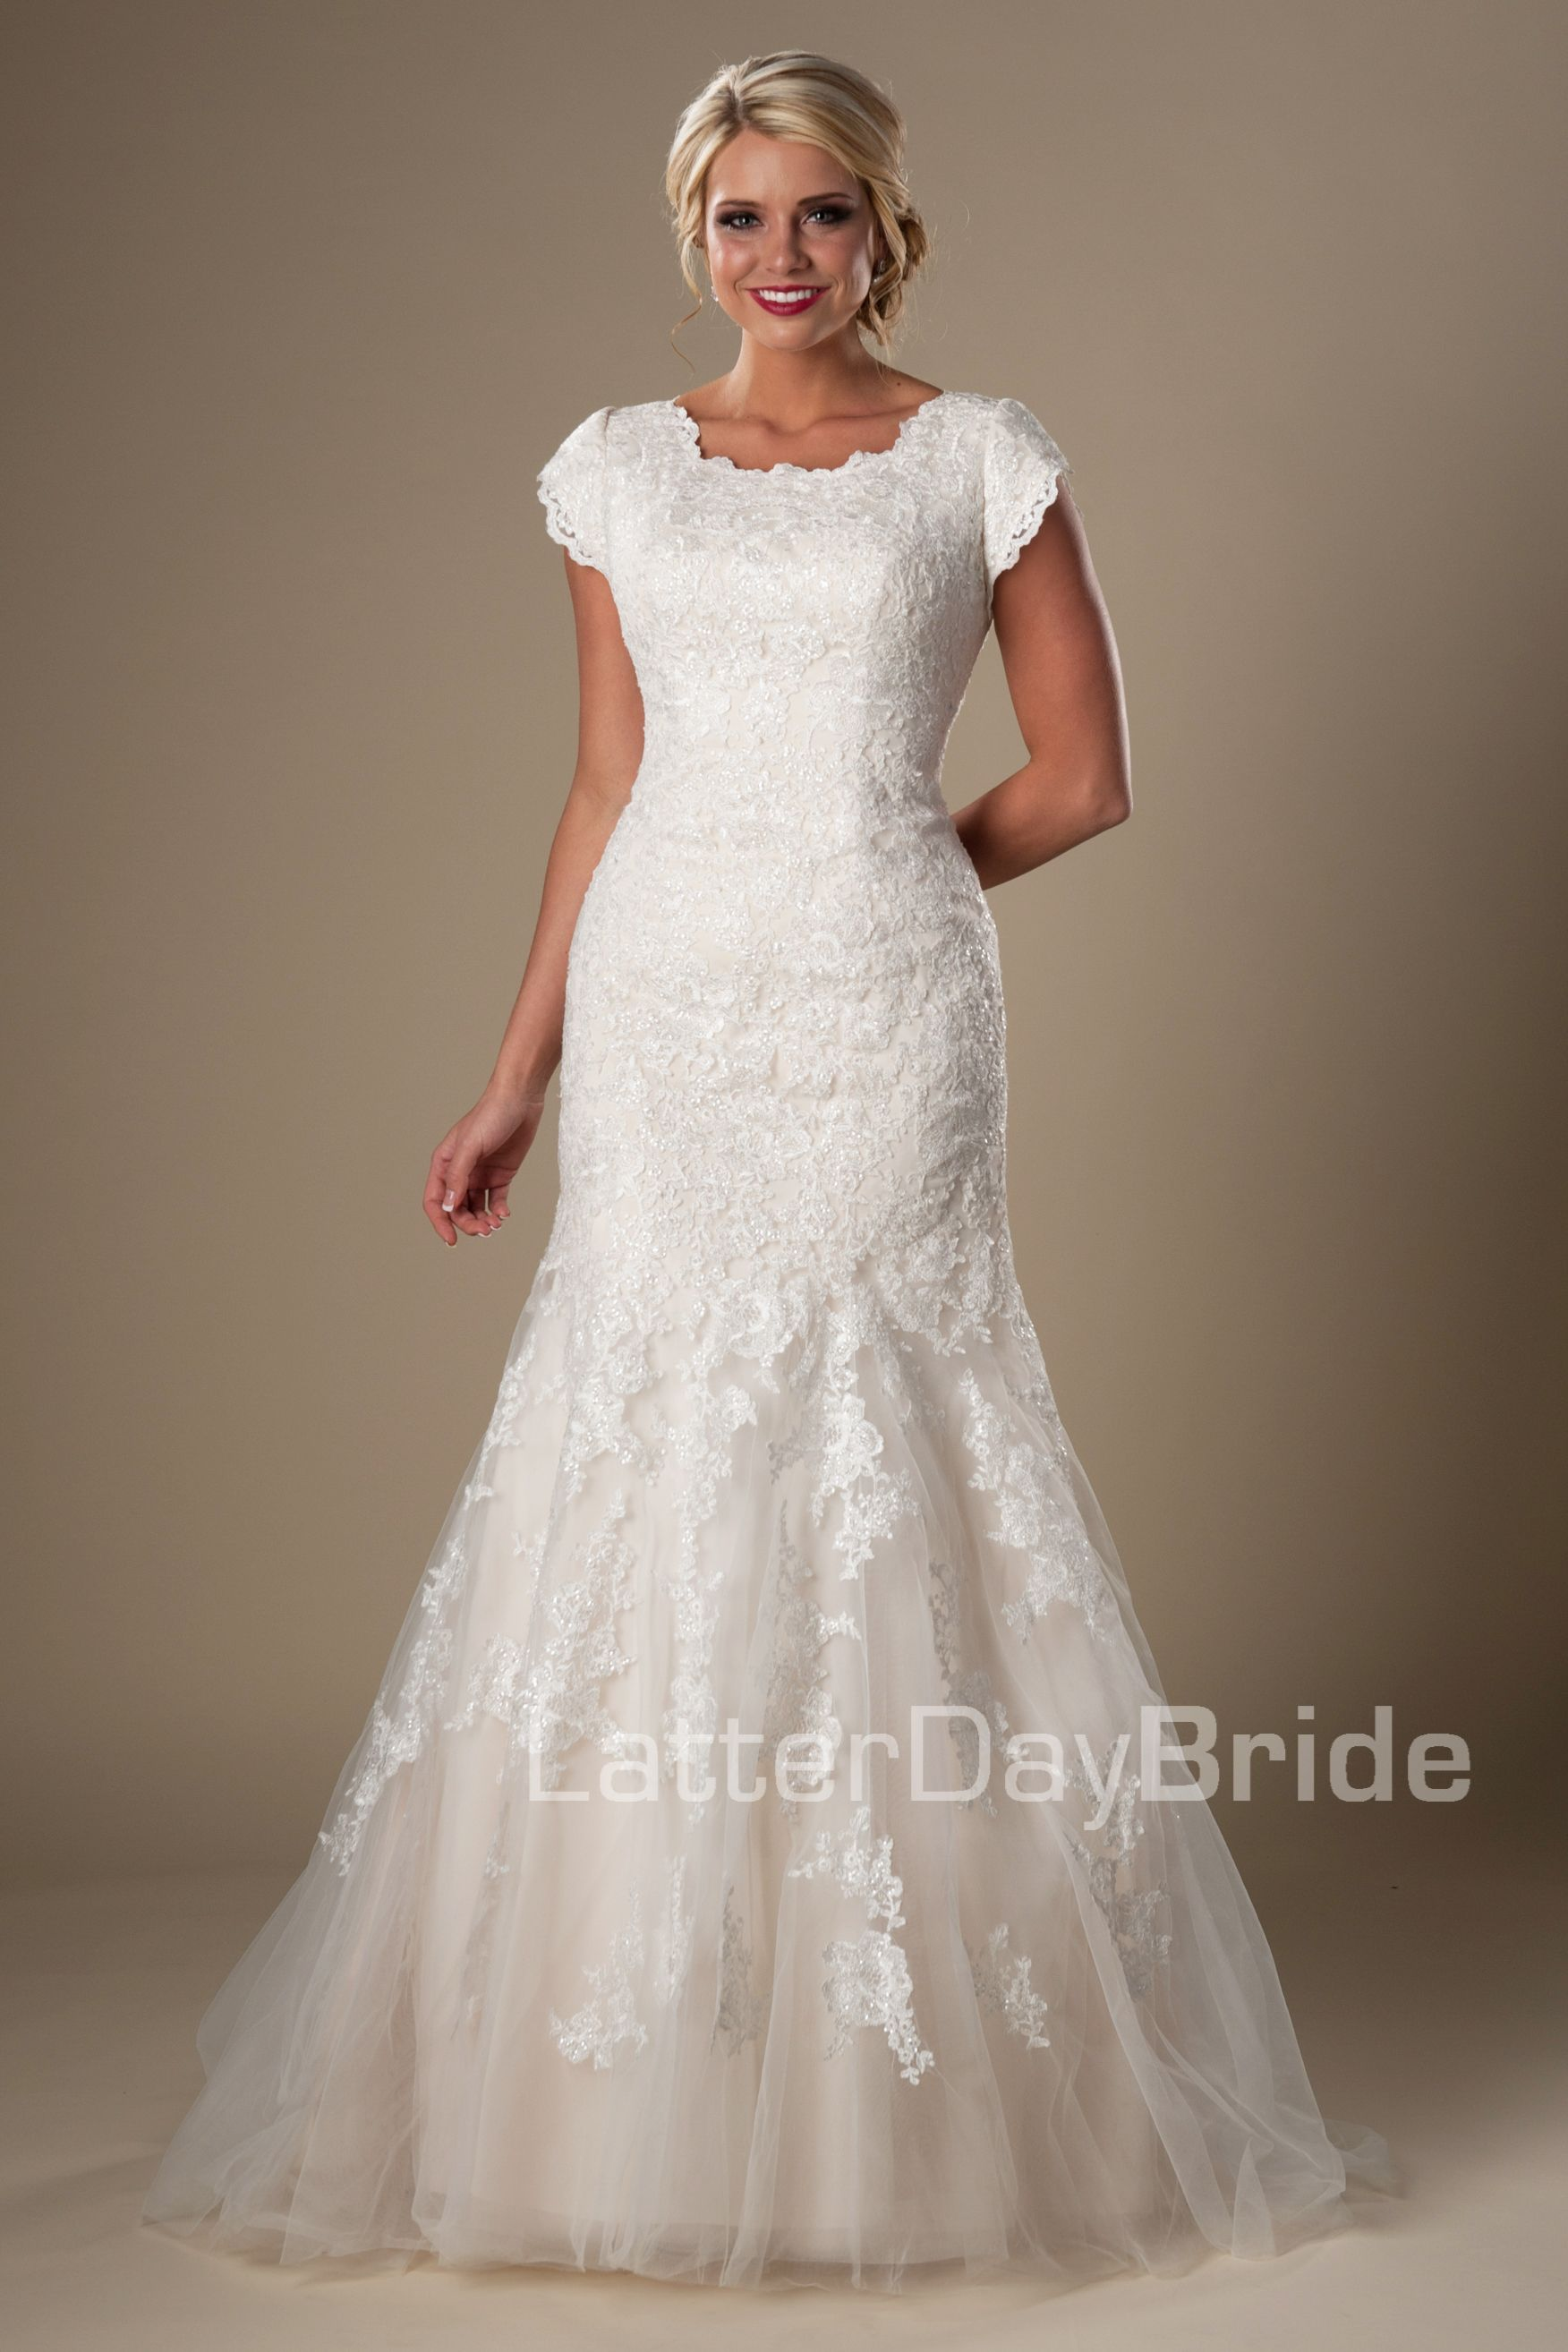 Berkeley modest lace wedding dress latterdaybride for Lds wedding dresses utah